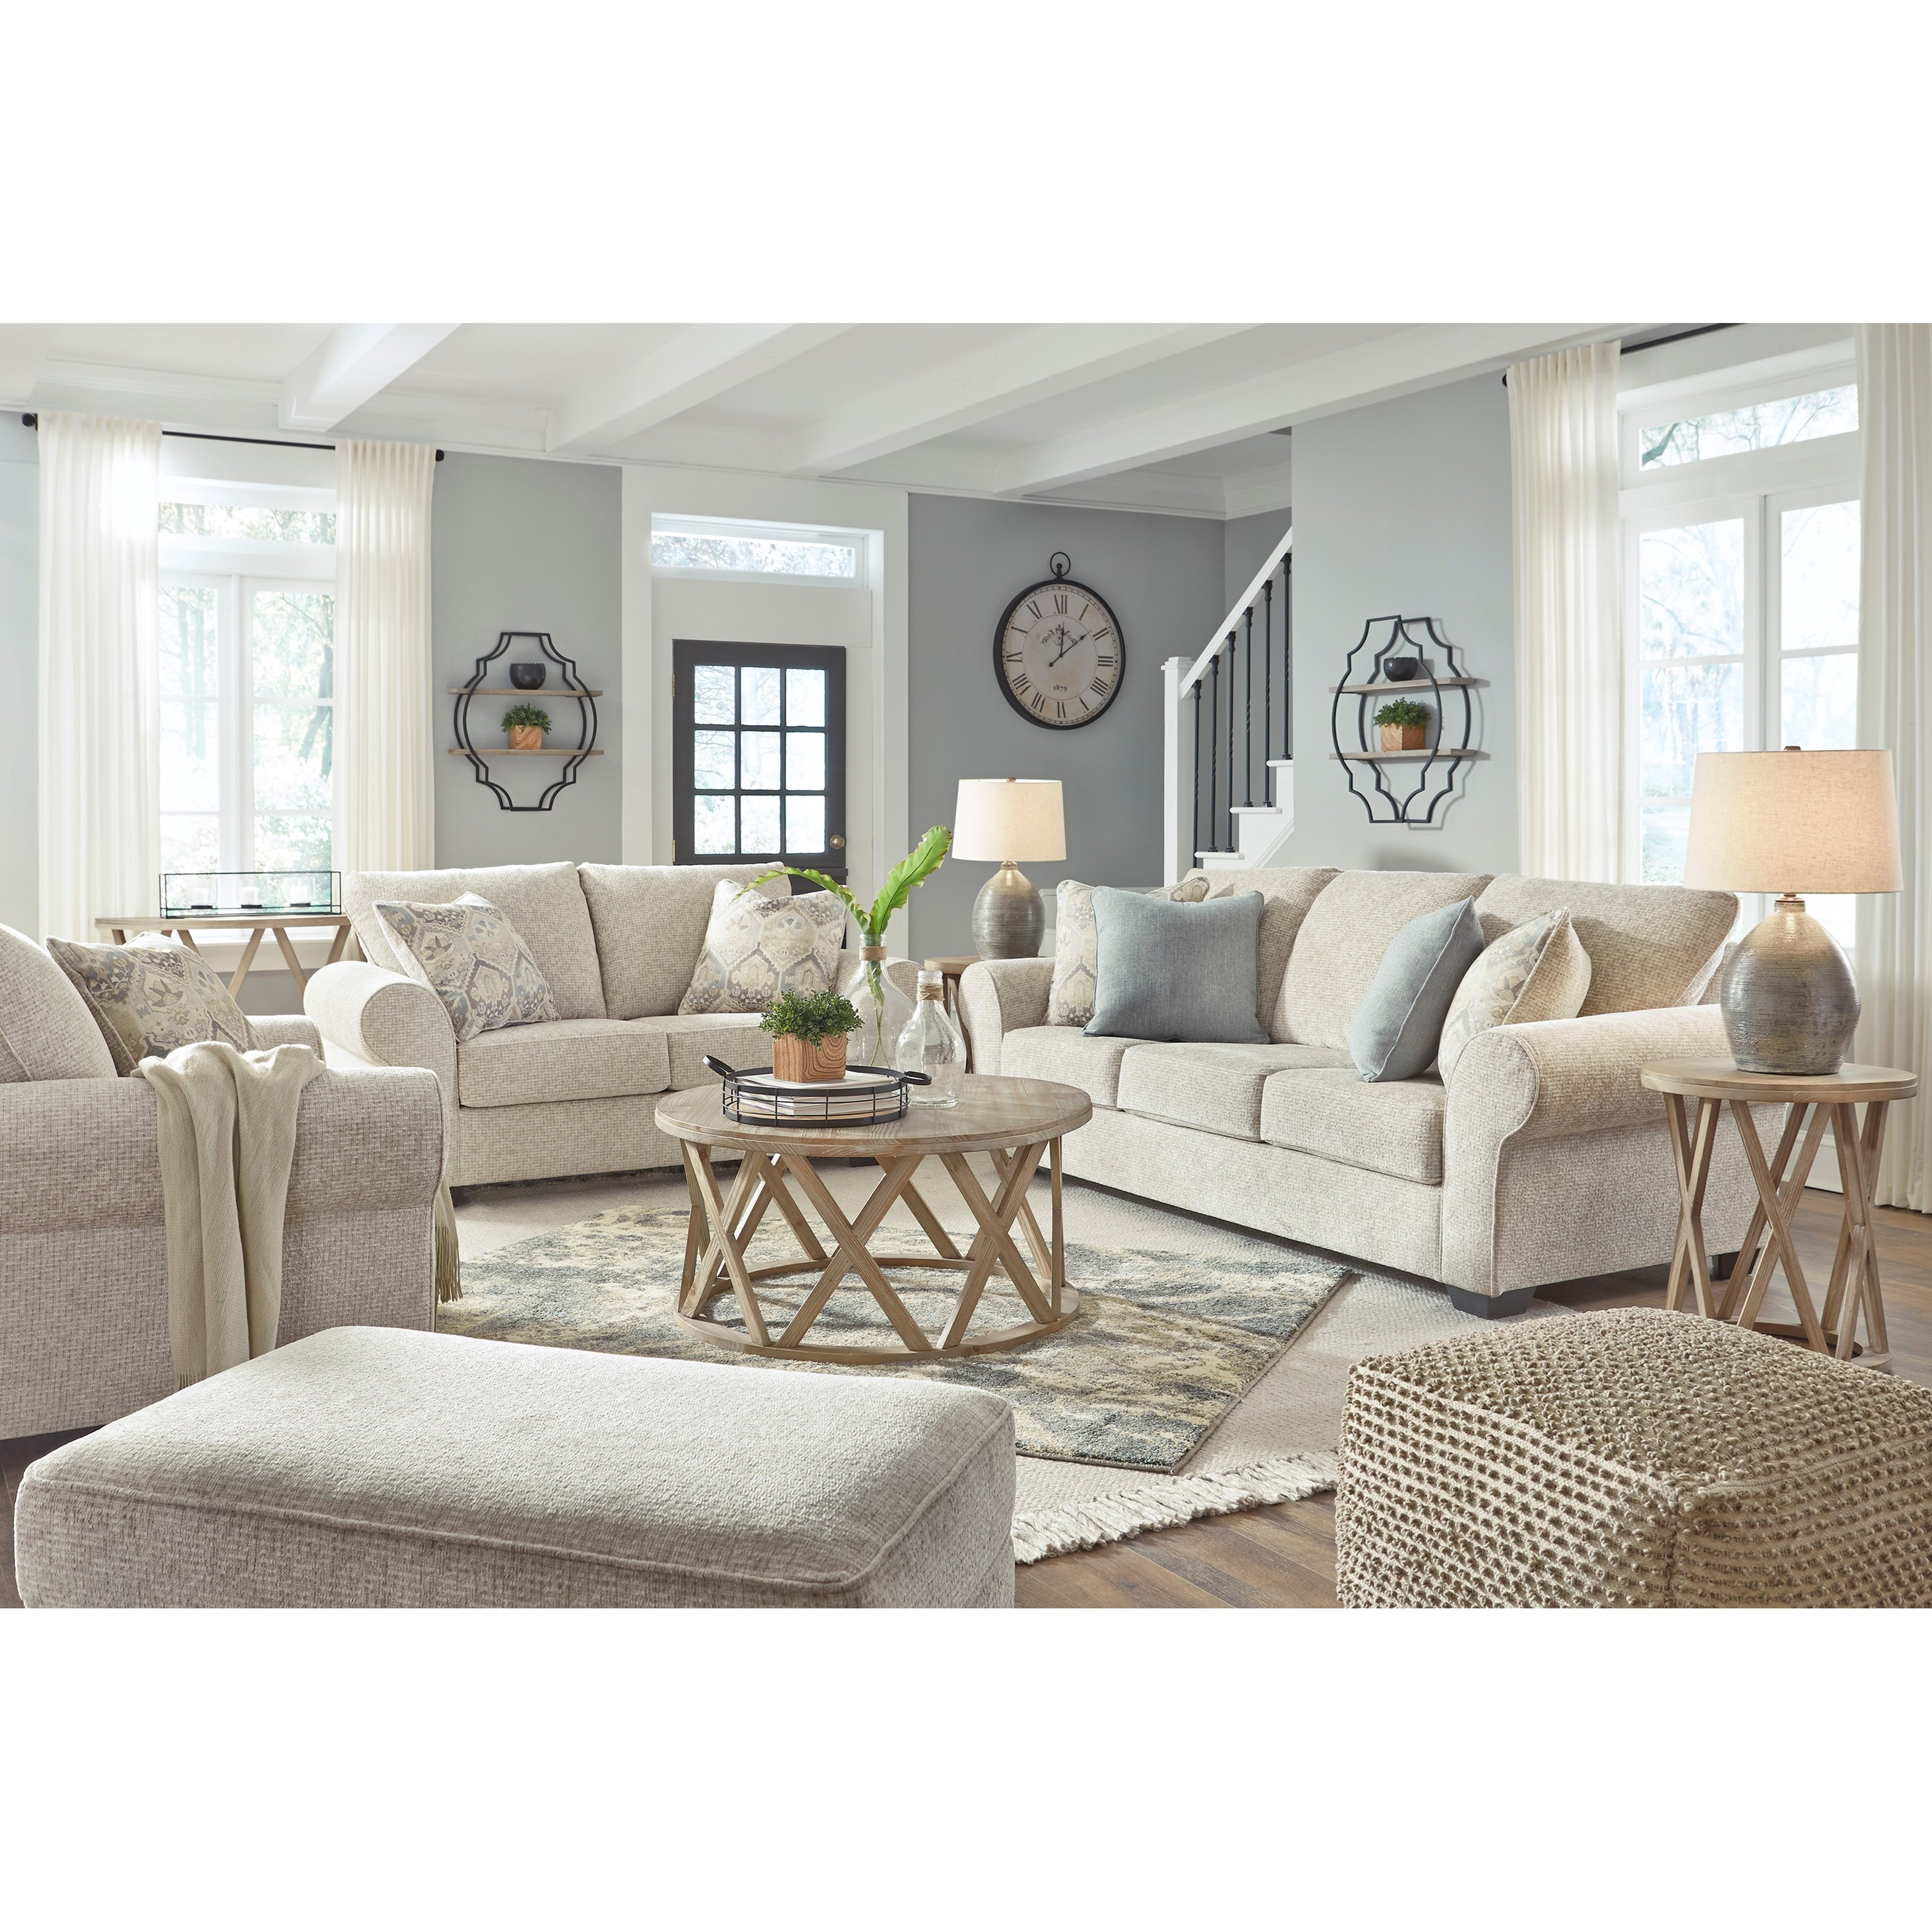 Haisley Living Room Group by Benchcraft at Miller Waldrop Furniture and Decor